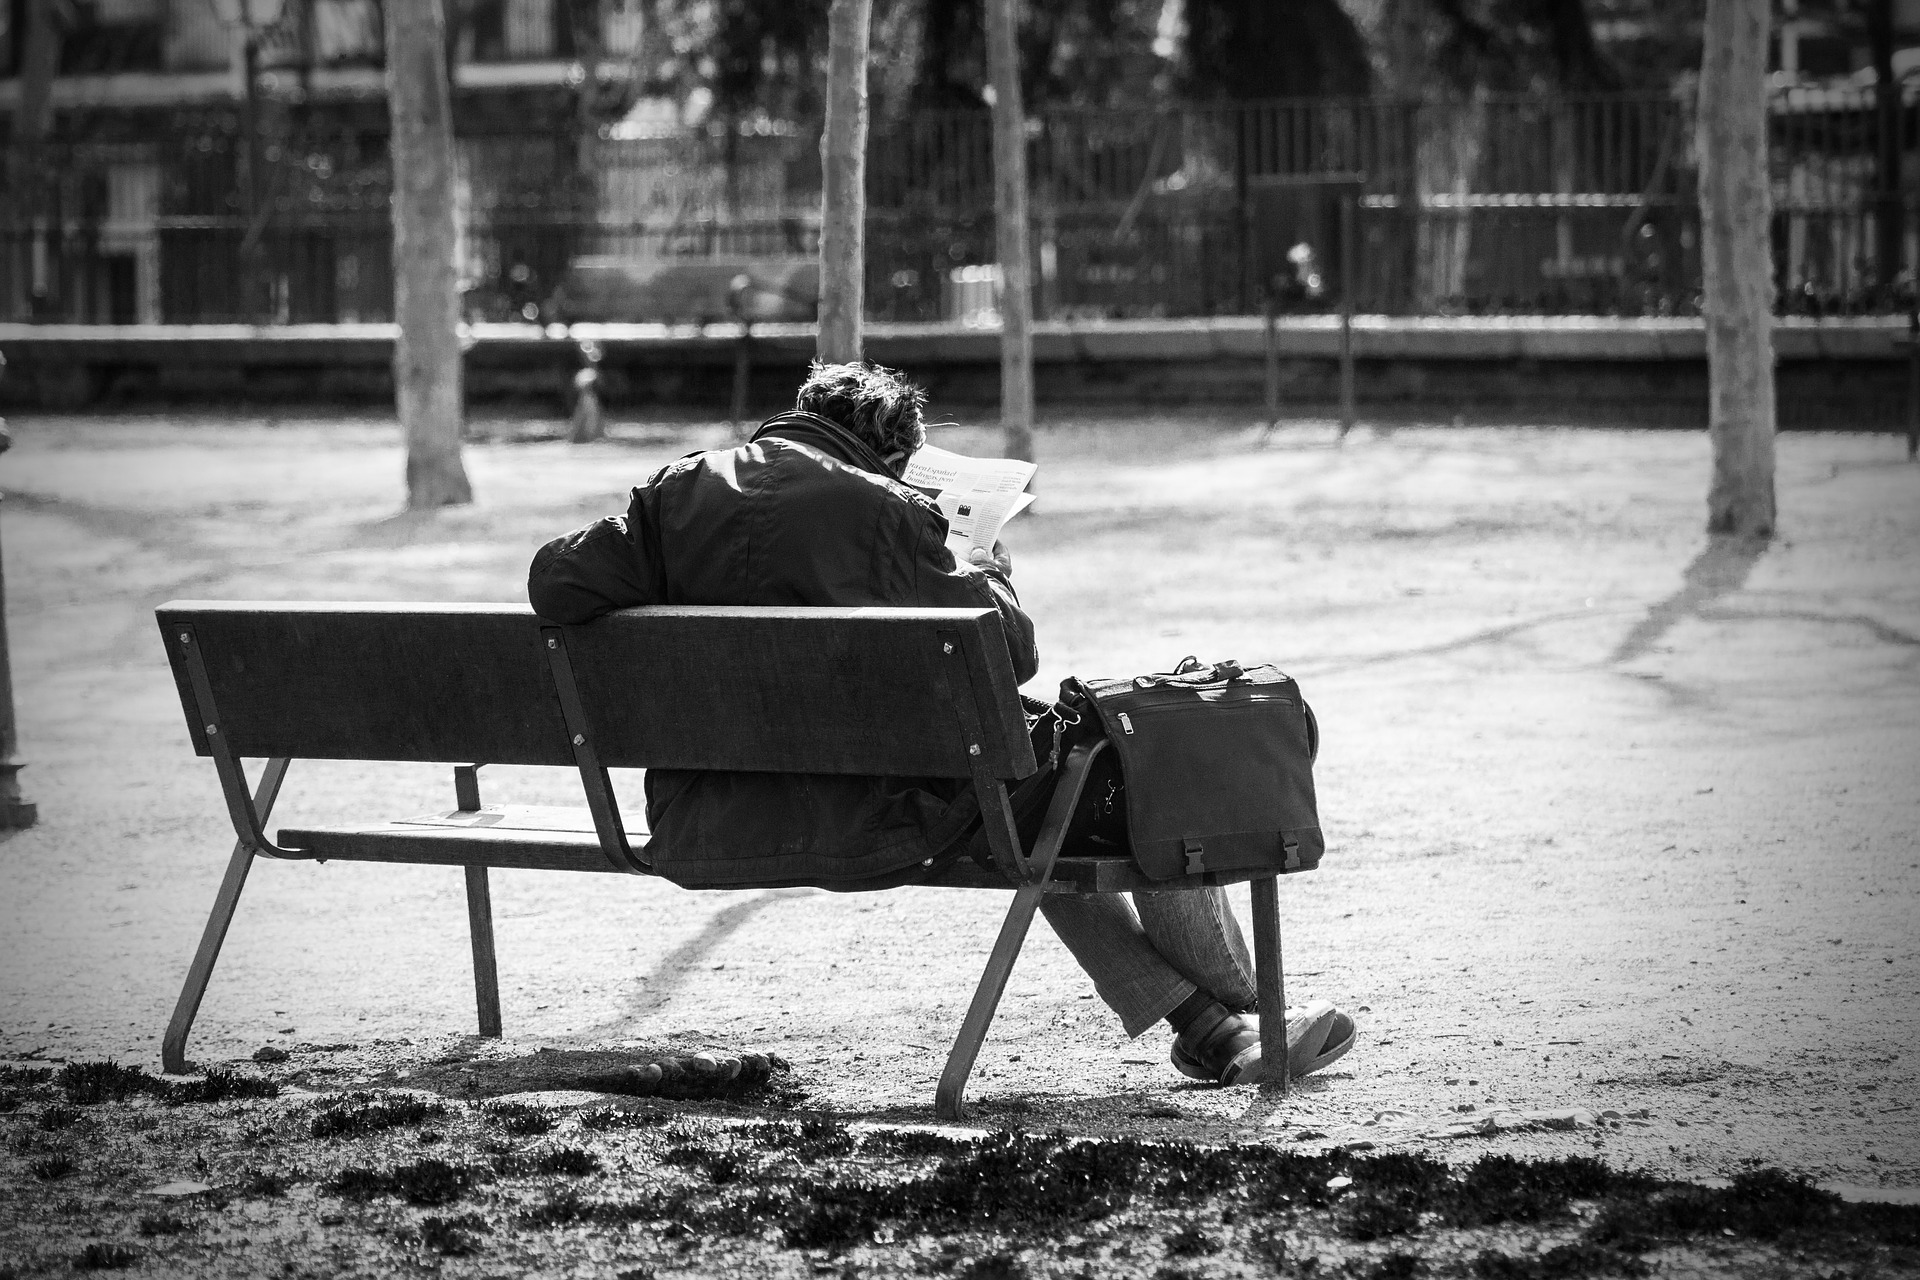 man-on-a-bench-2069539_1920.jpg